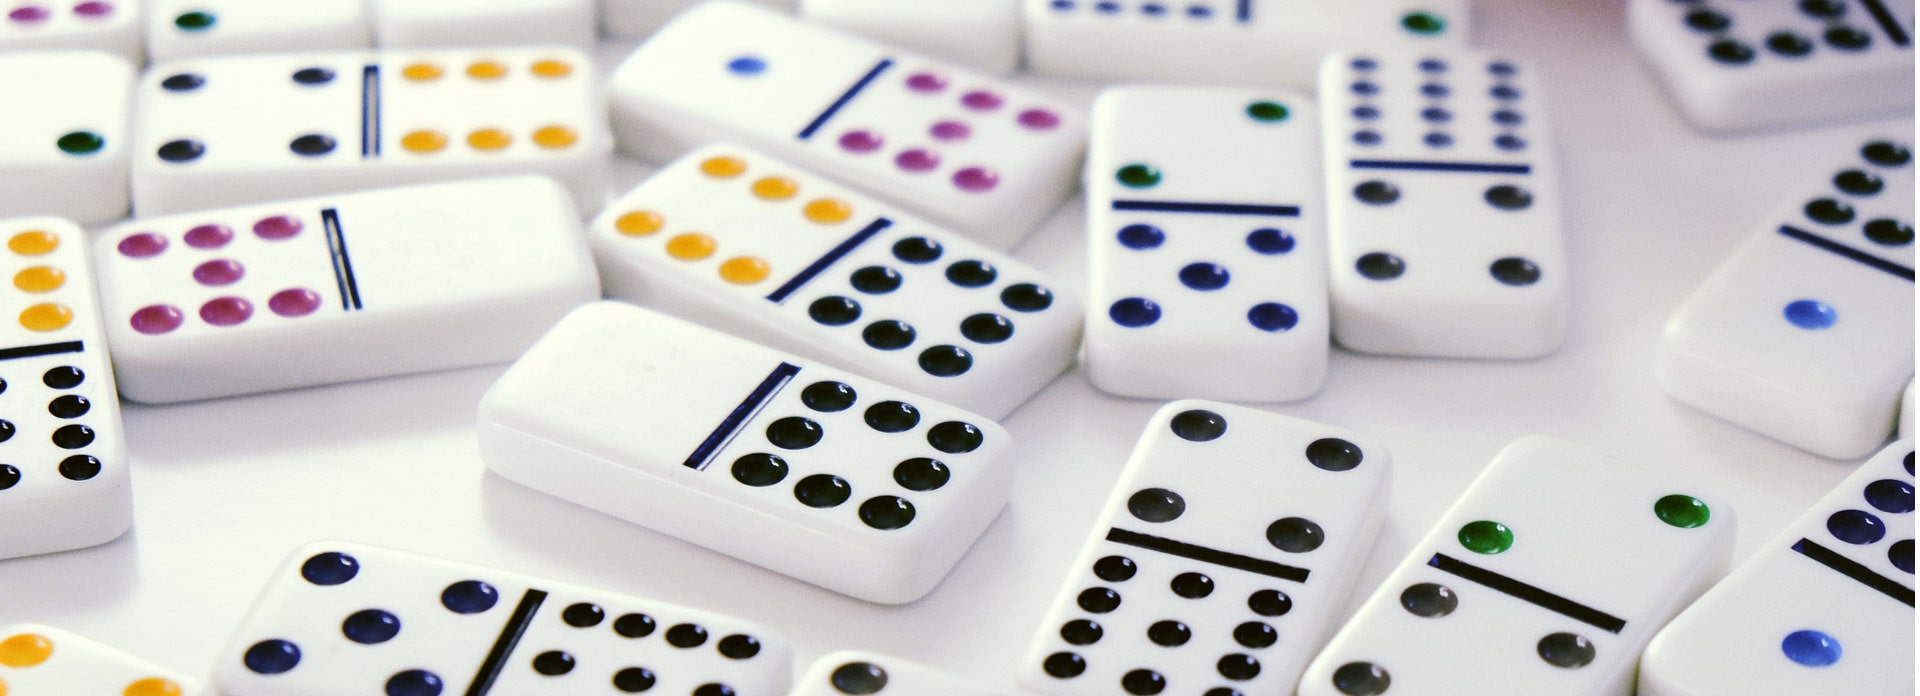 Close-up of the game, dominoes